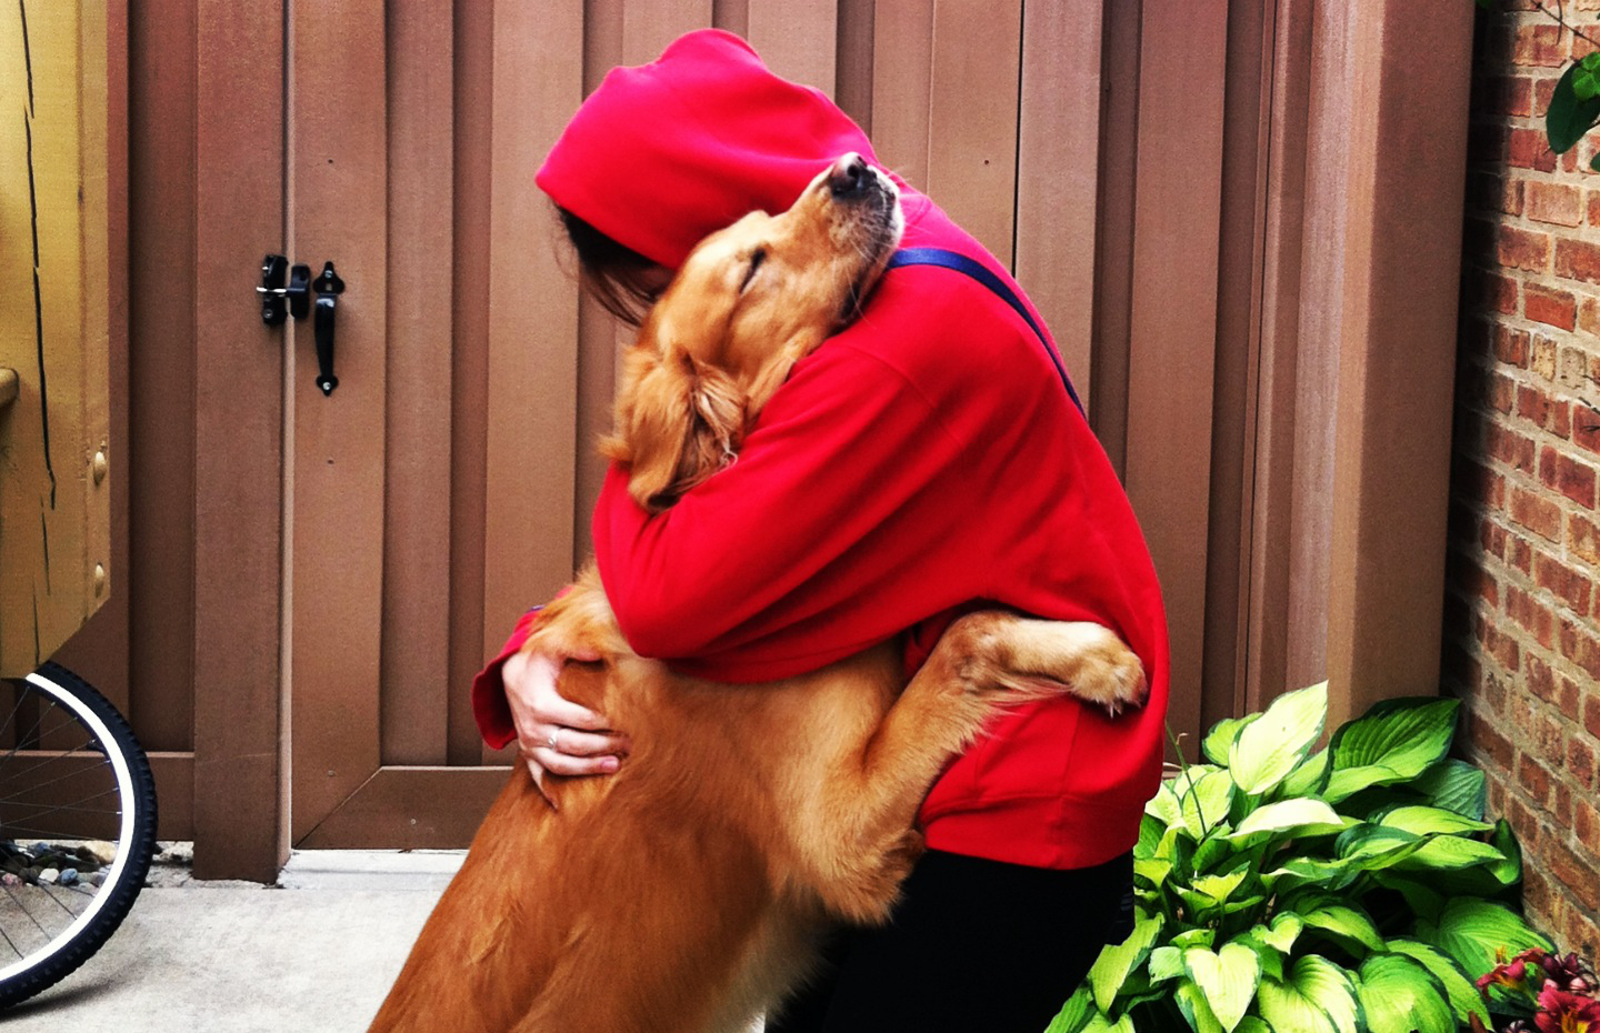 These Epic Dog-Human Hugs That Will Make You Want to go Smoosh Your Pup!